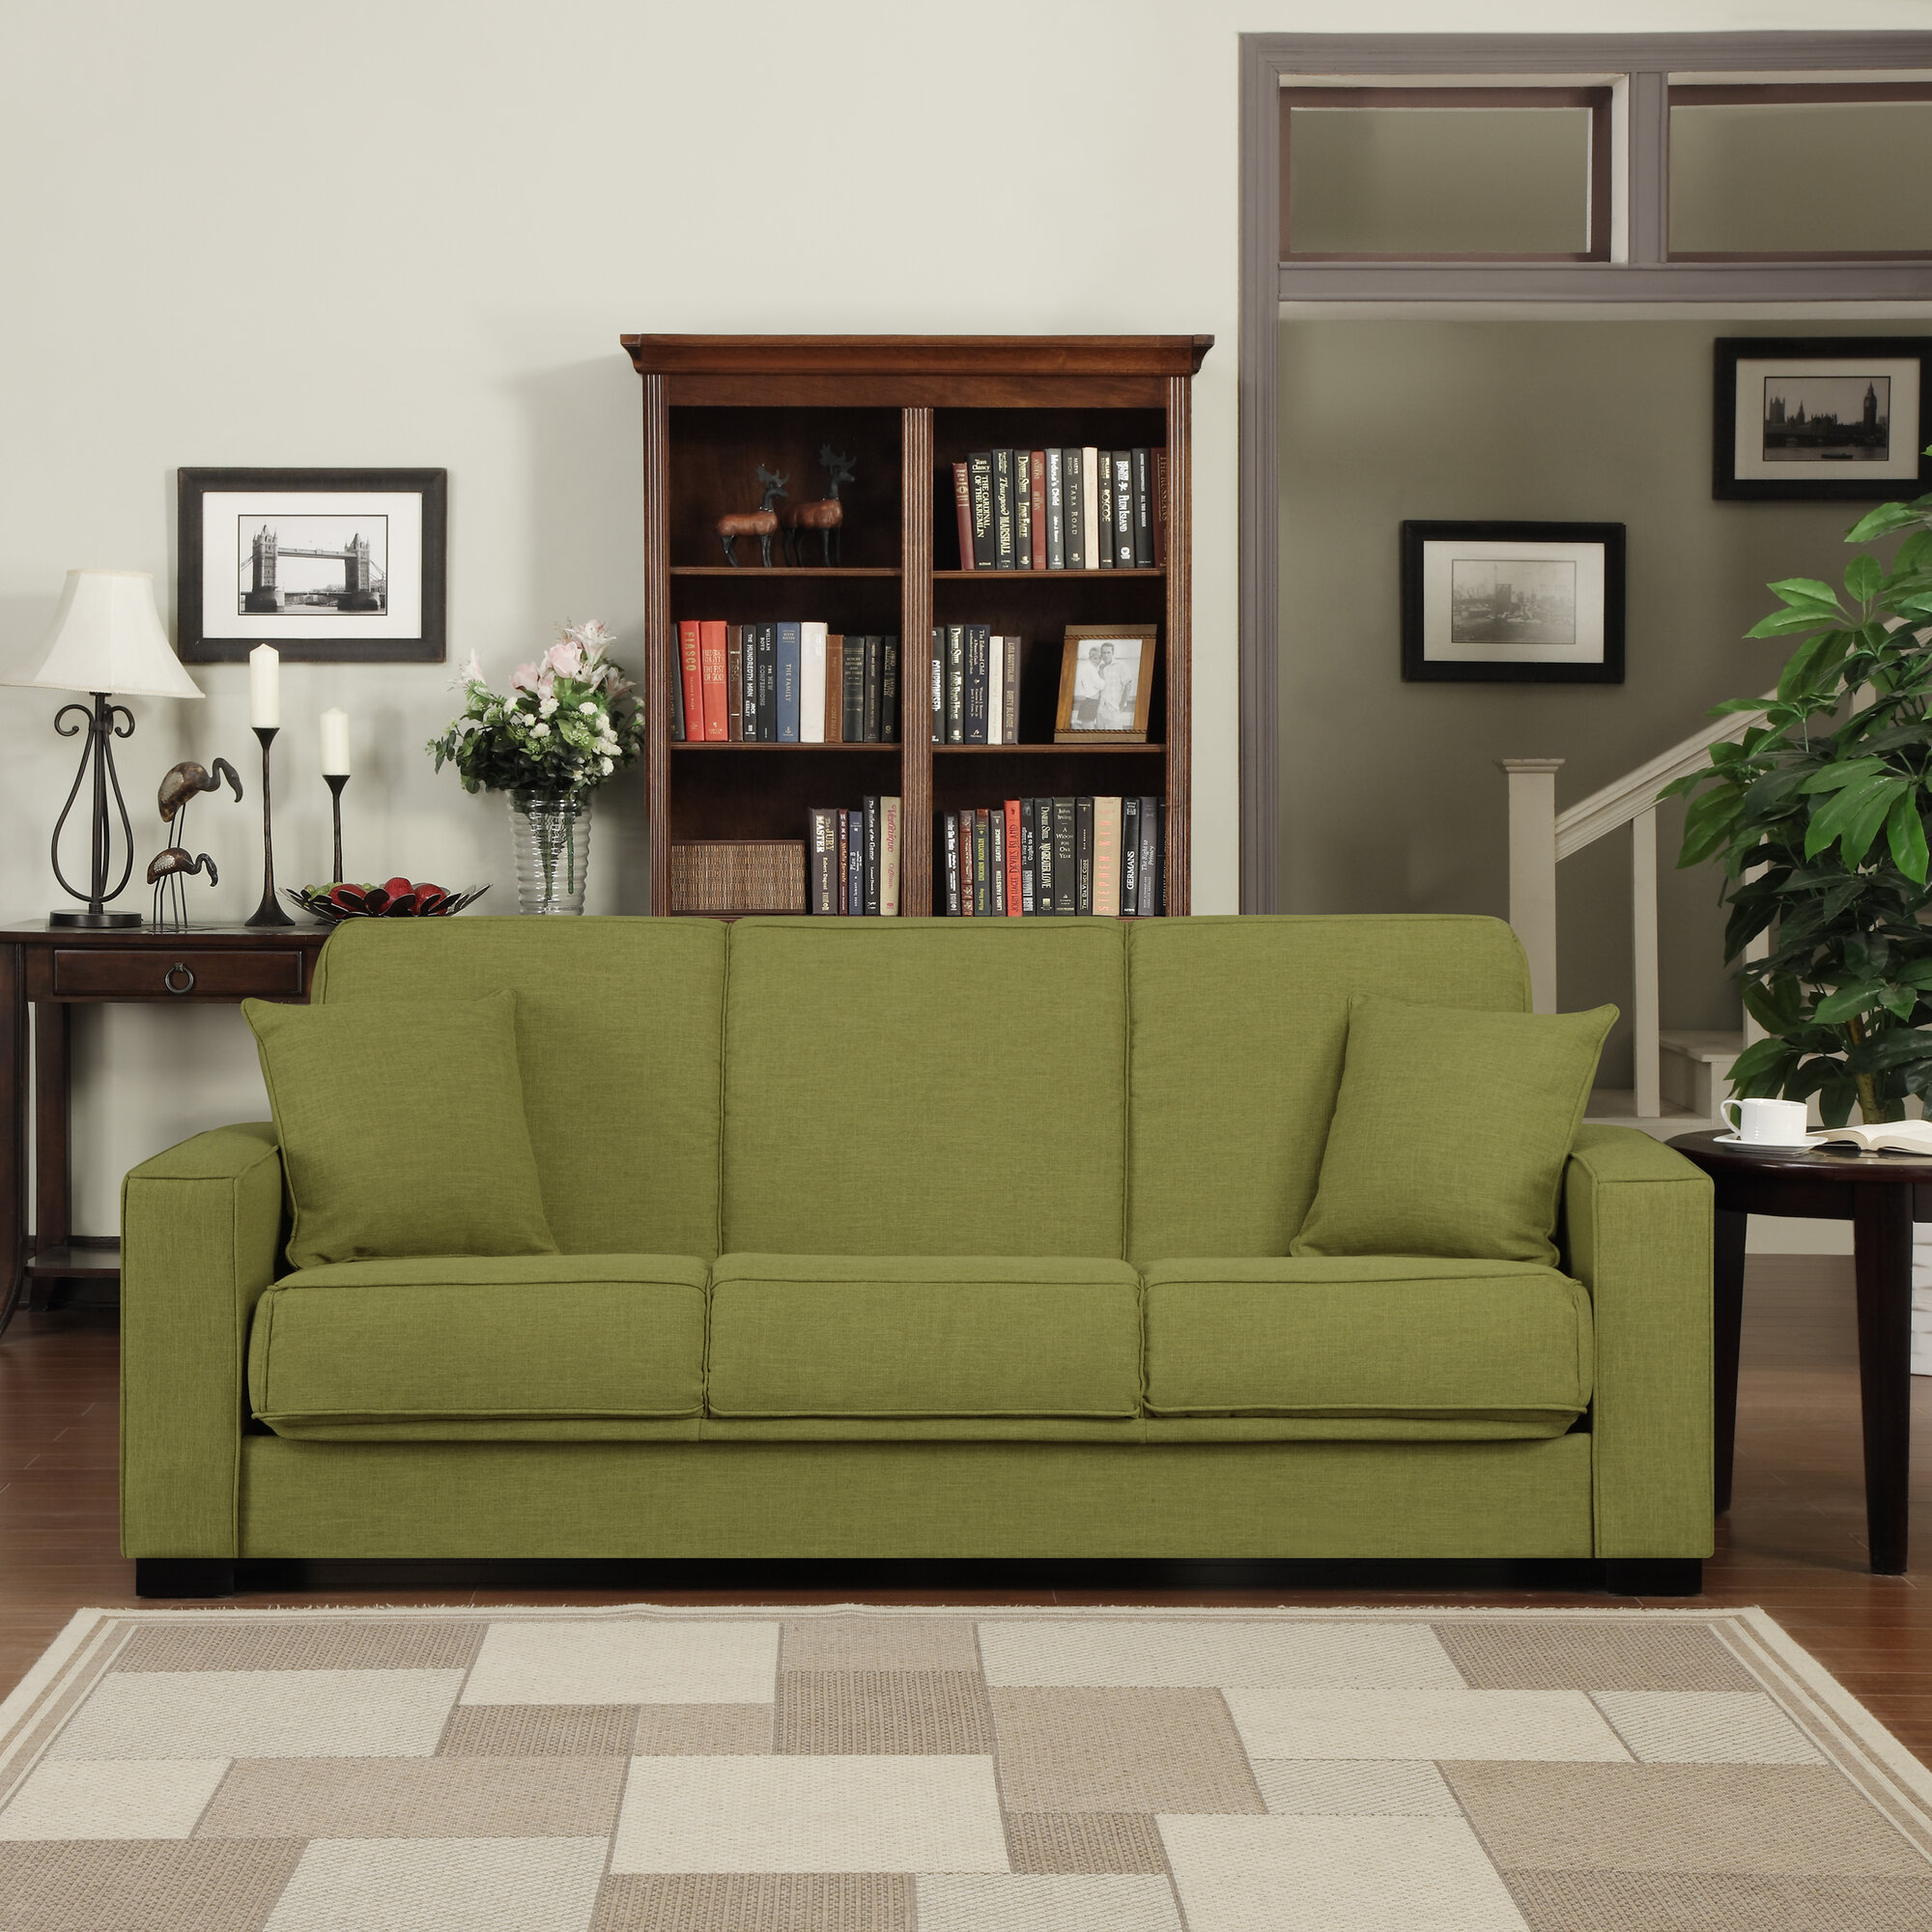 Handy Living Malibu Convert A Couch Sleeper Sofa Ebay ~ Convert A Couch And Sofa Bed